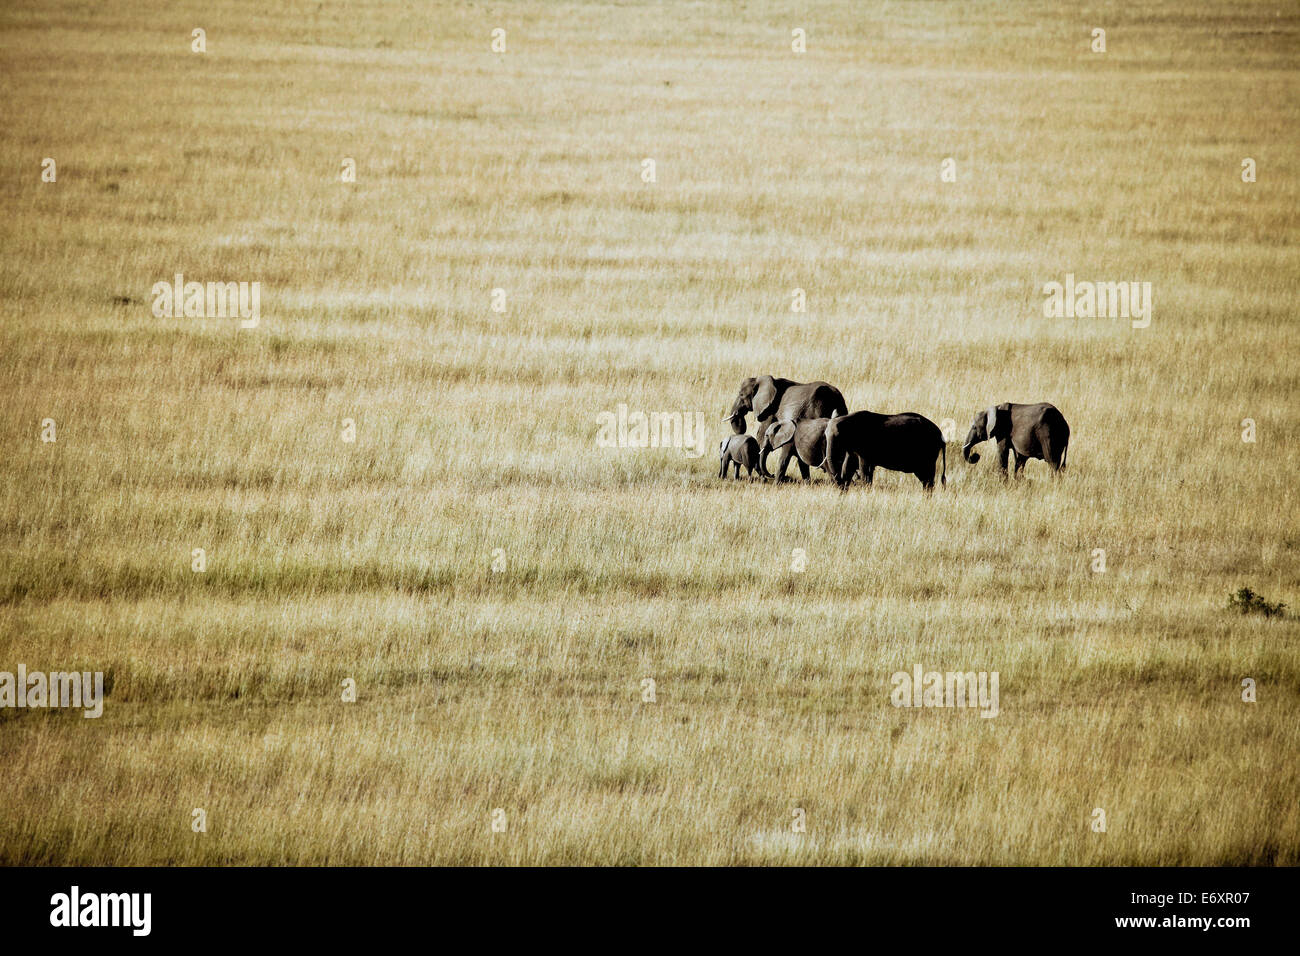 A group of elephants in the Masai Mara, Kenya, Africa - Stock Image